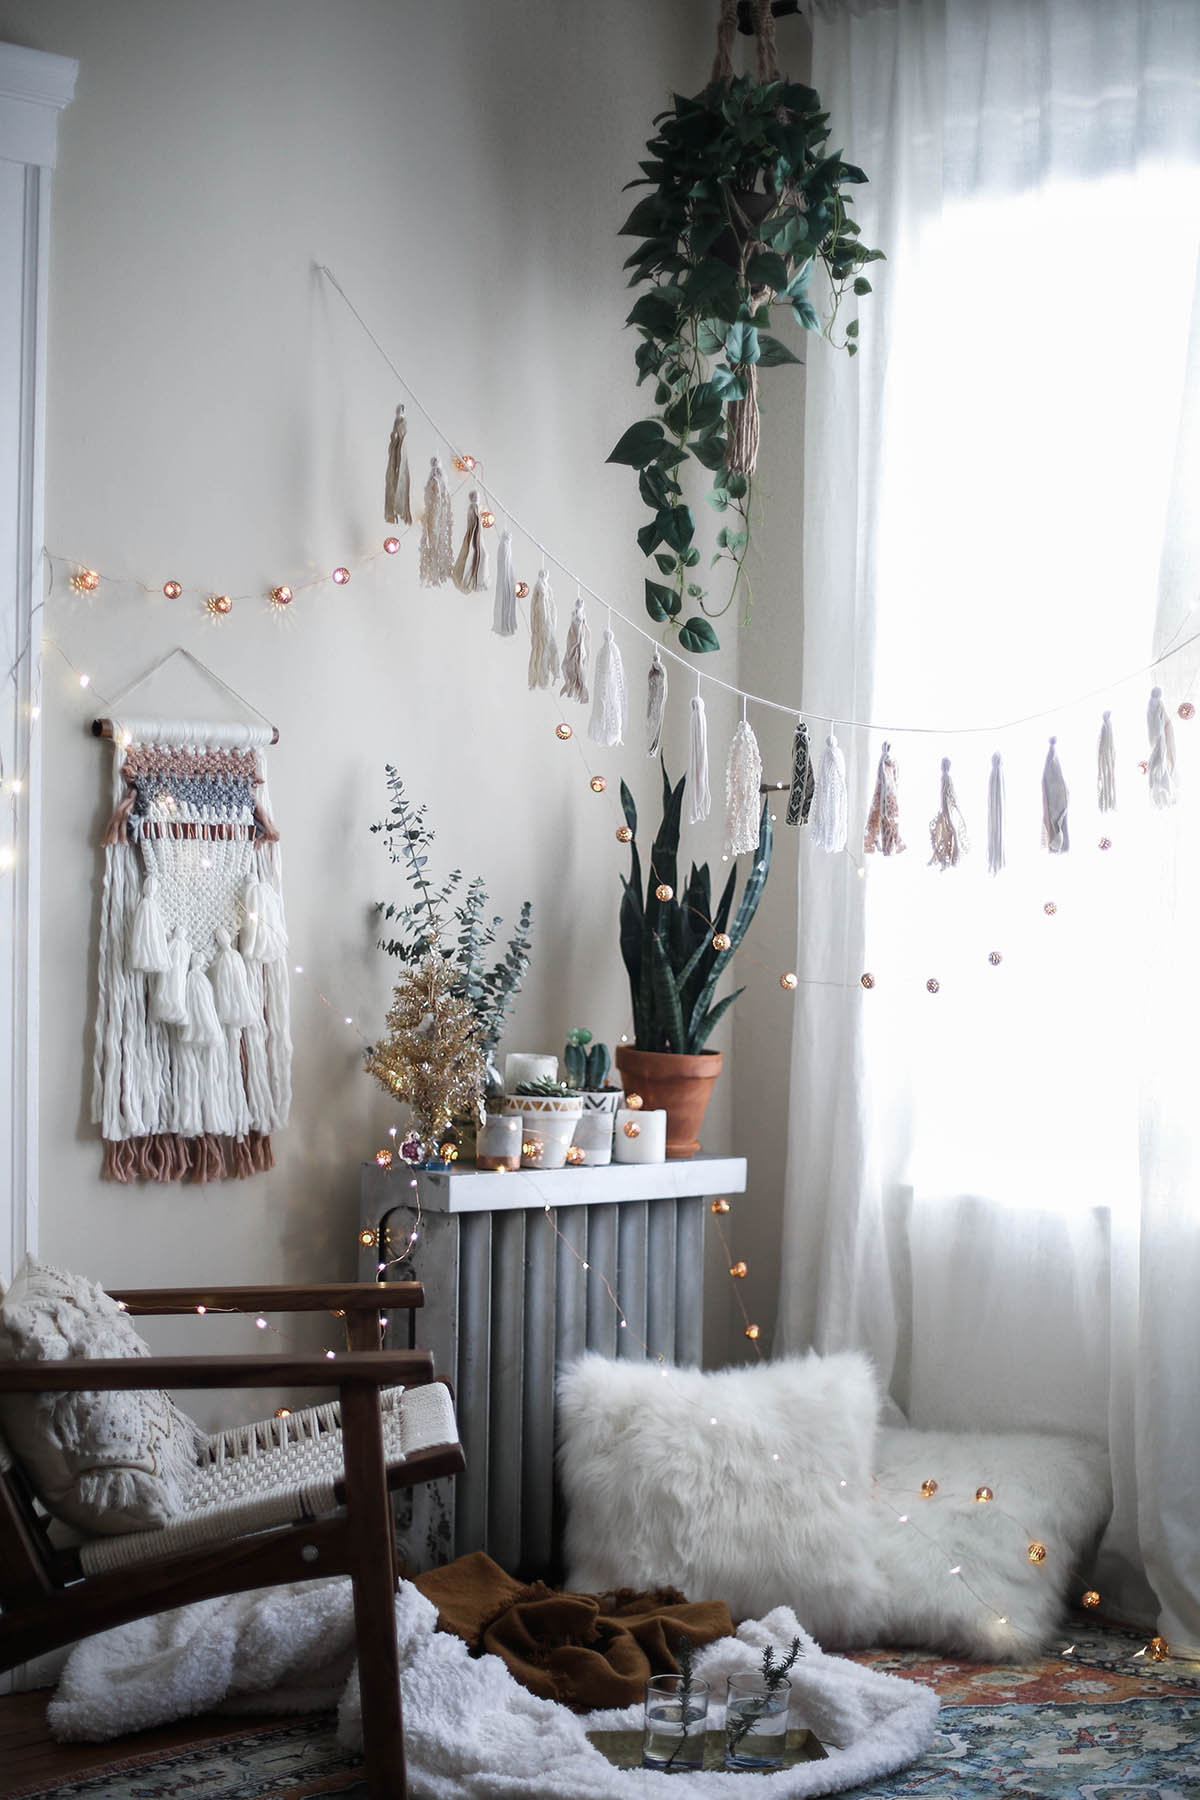 20 Charming Boho Inspired Home Decor Ideas You\'ll Want To Copy